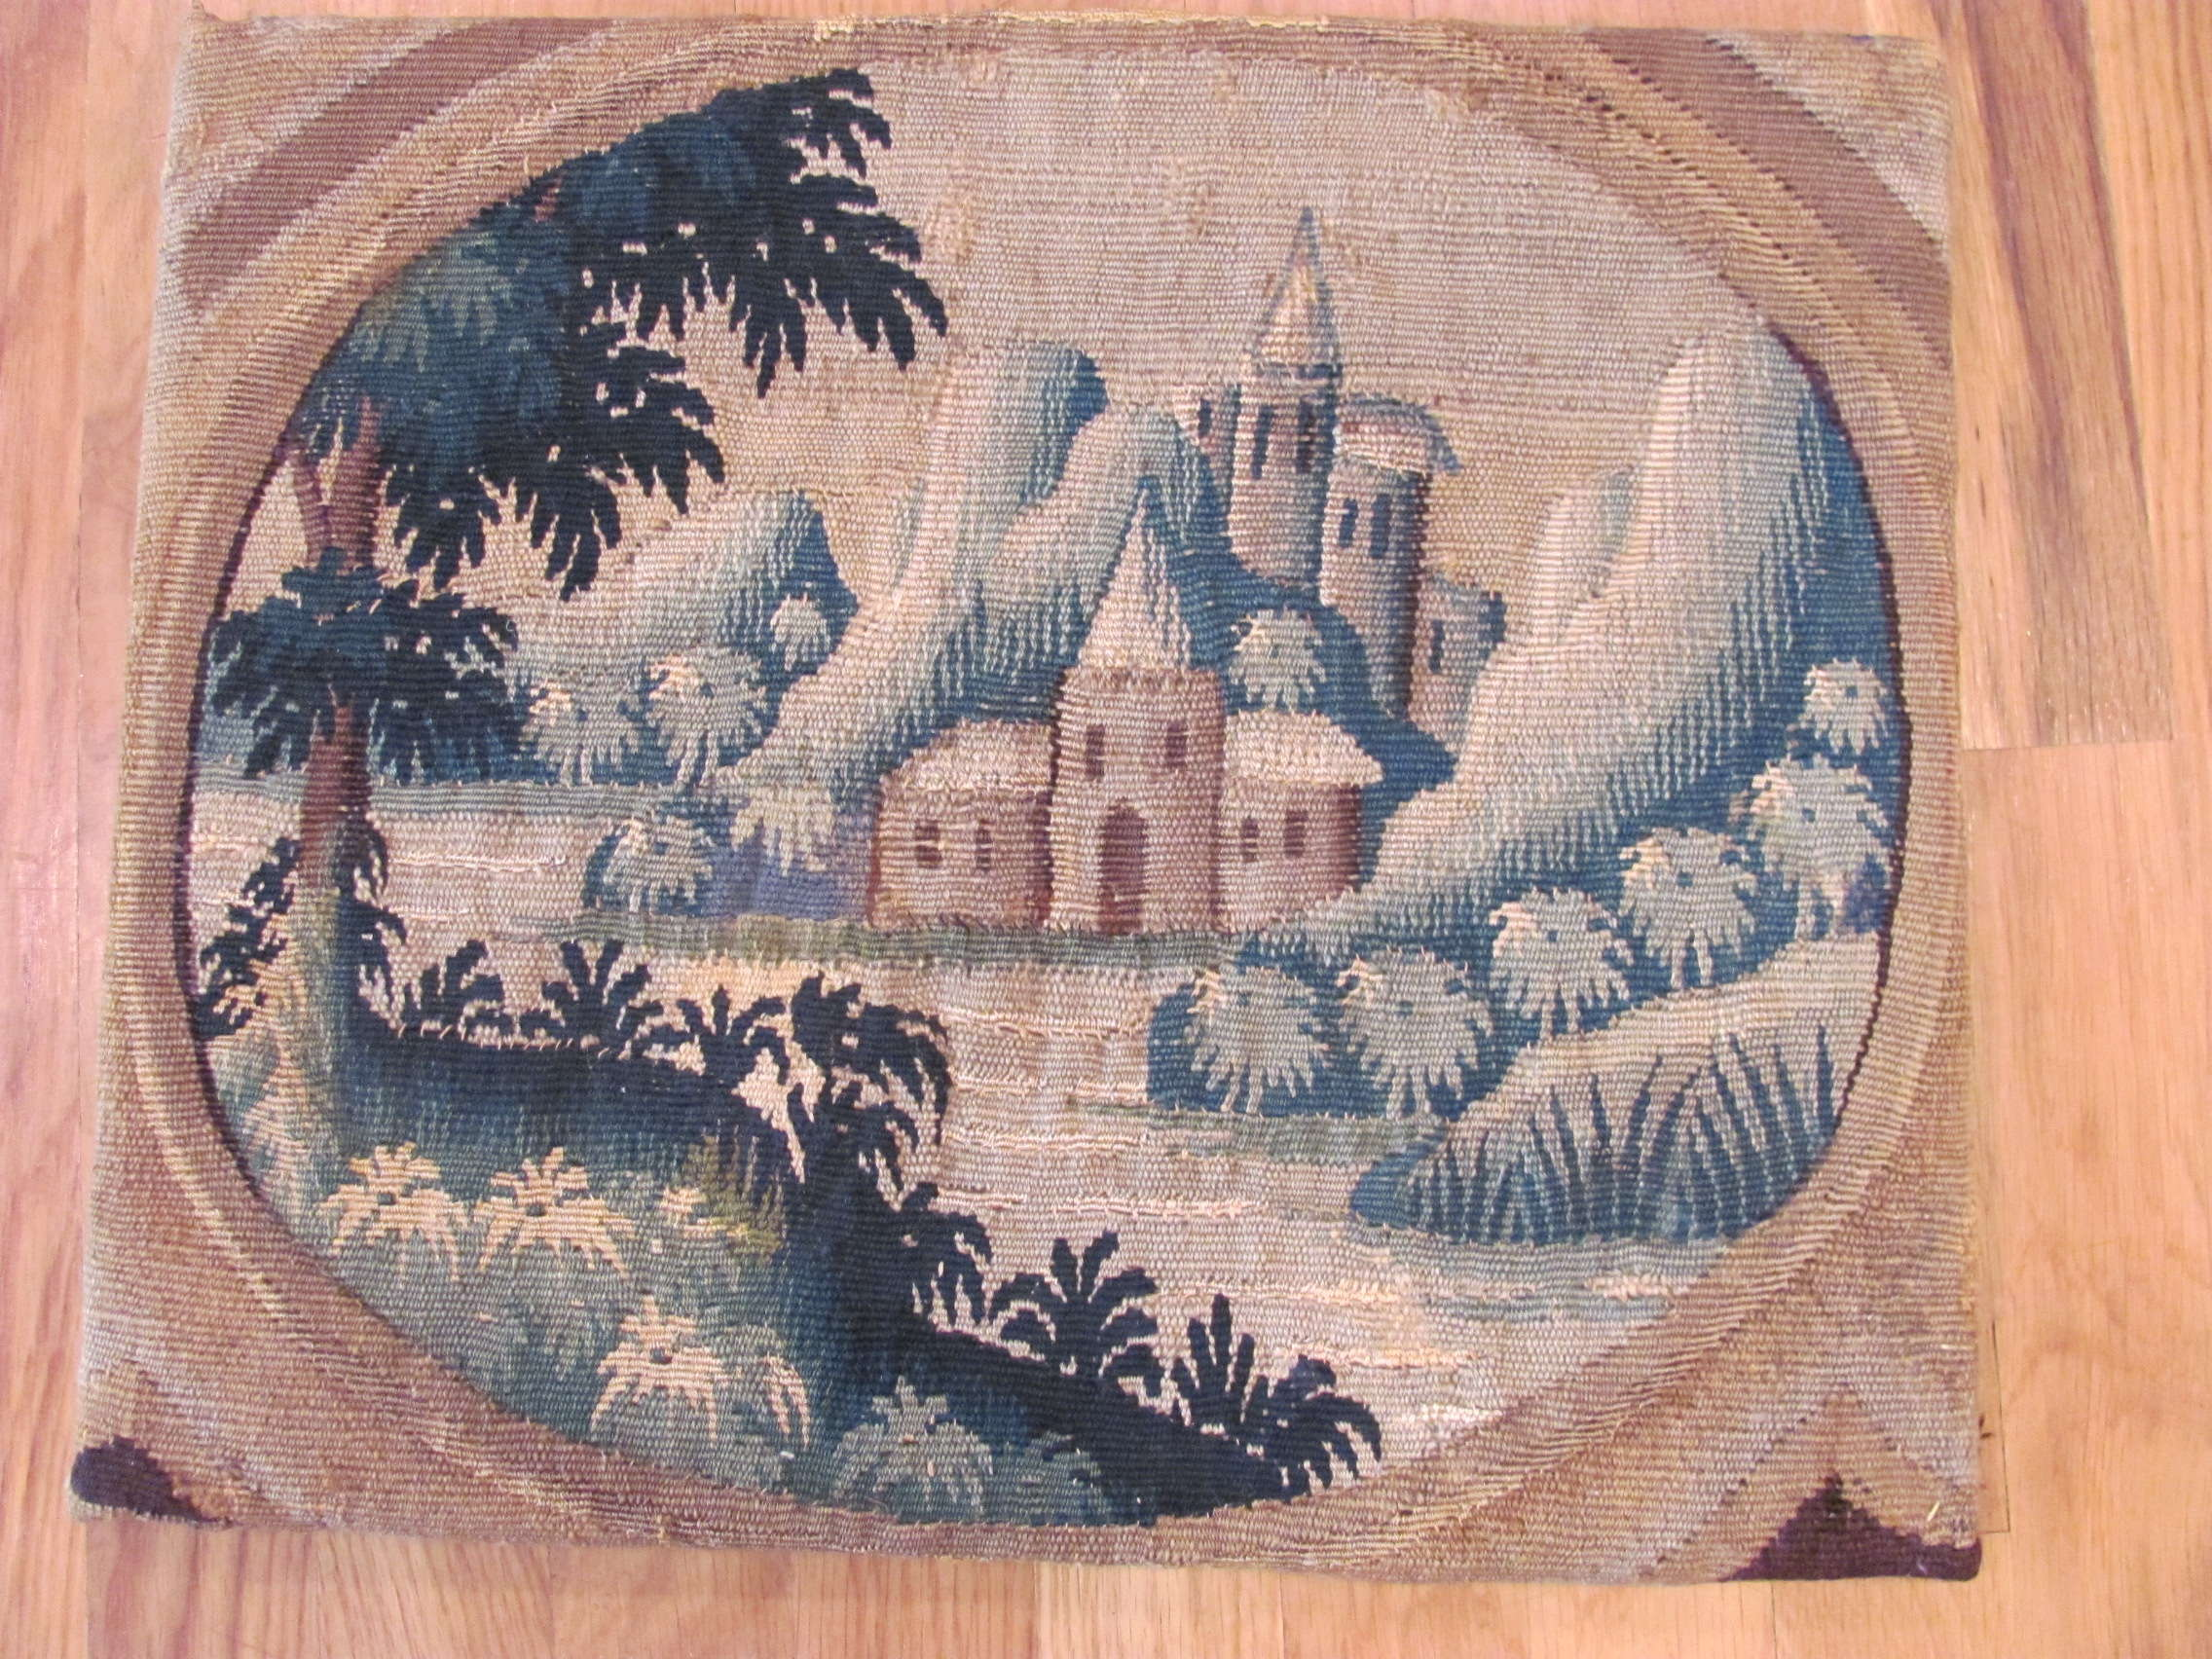 Antique Flemish Tapestry | Circa 1600